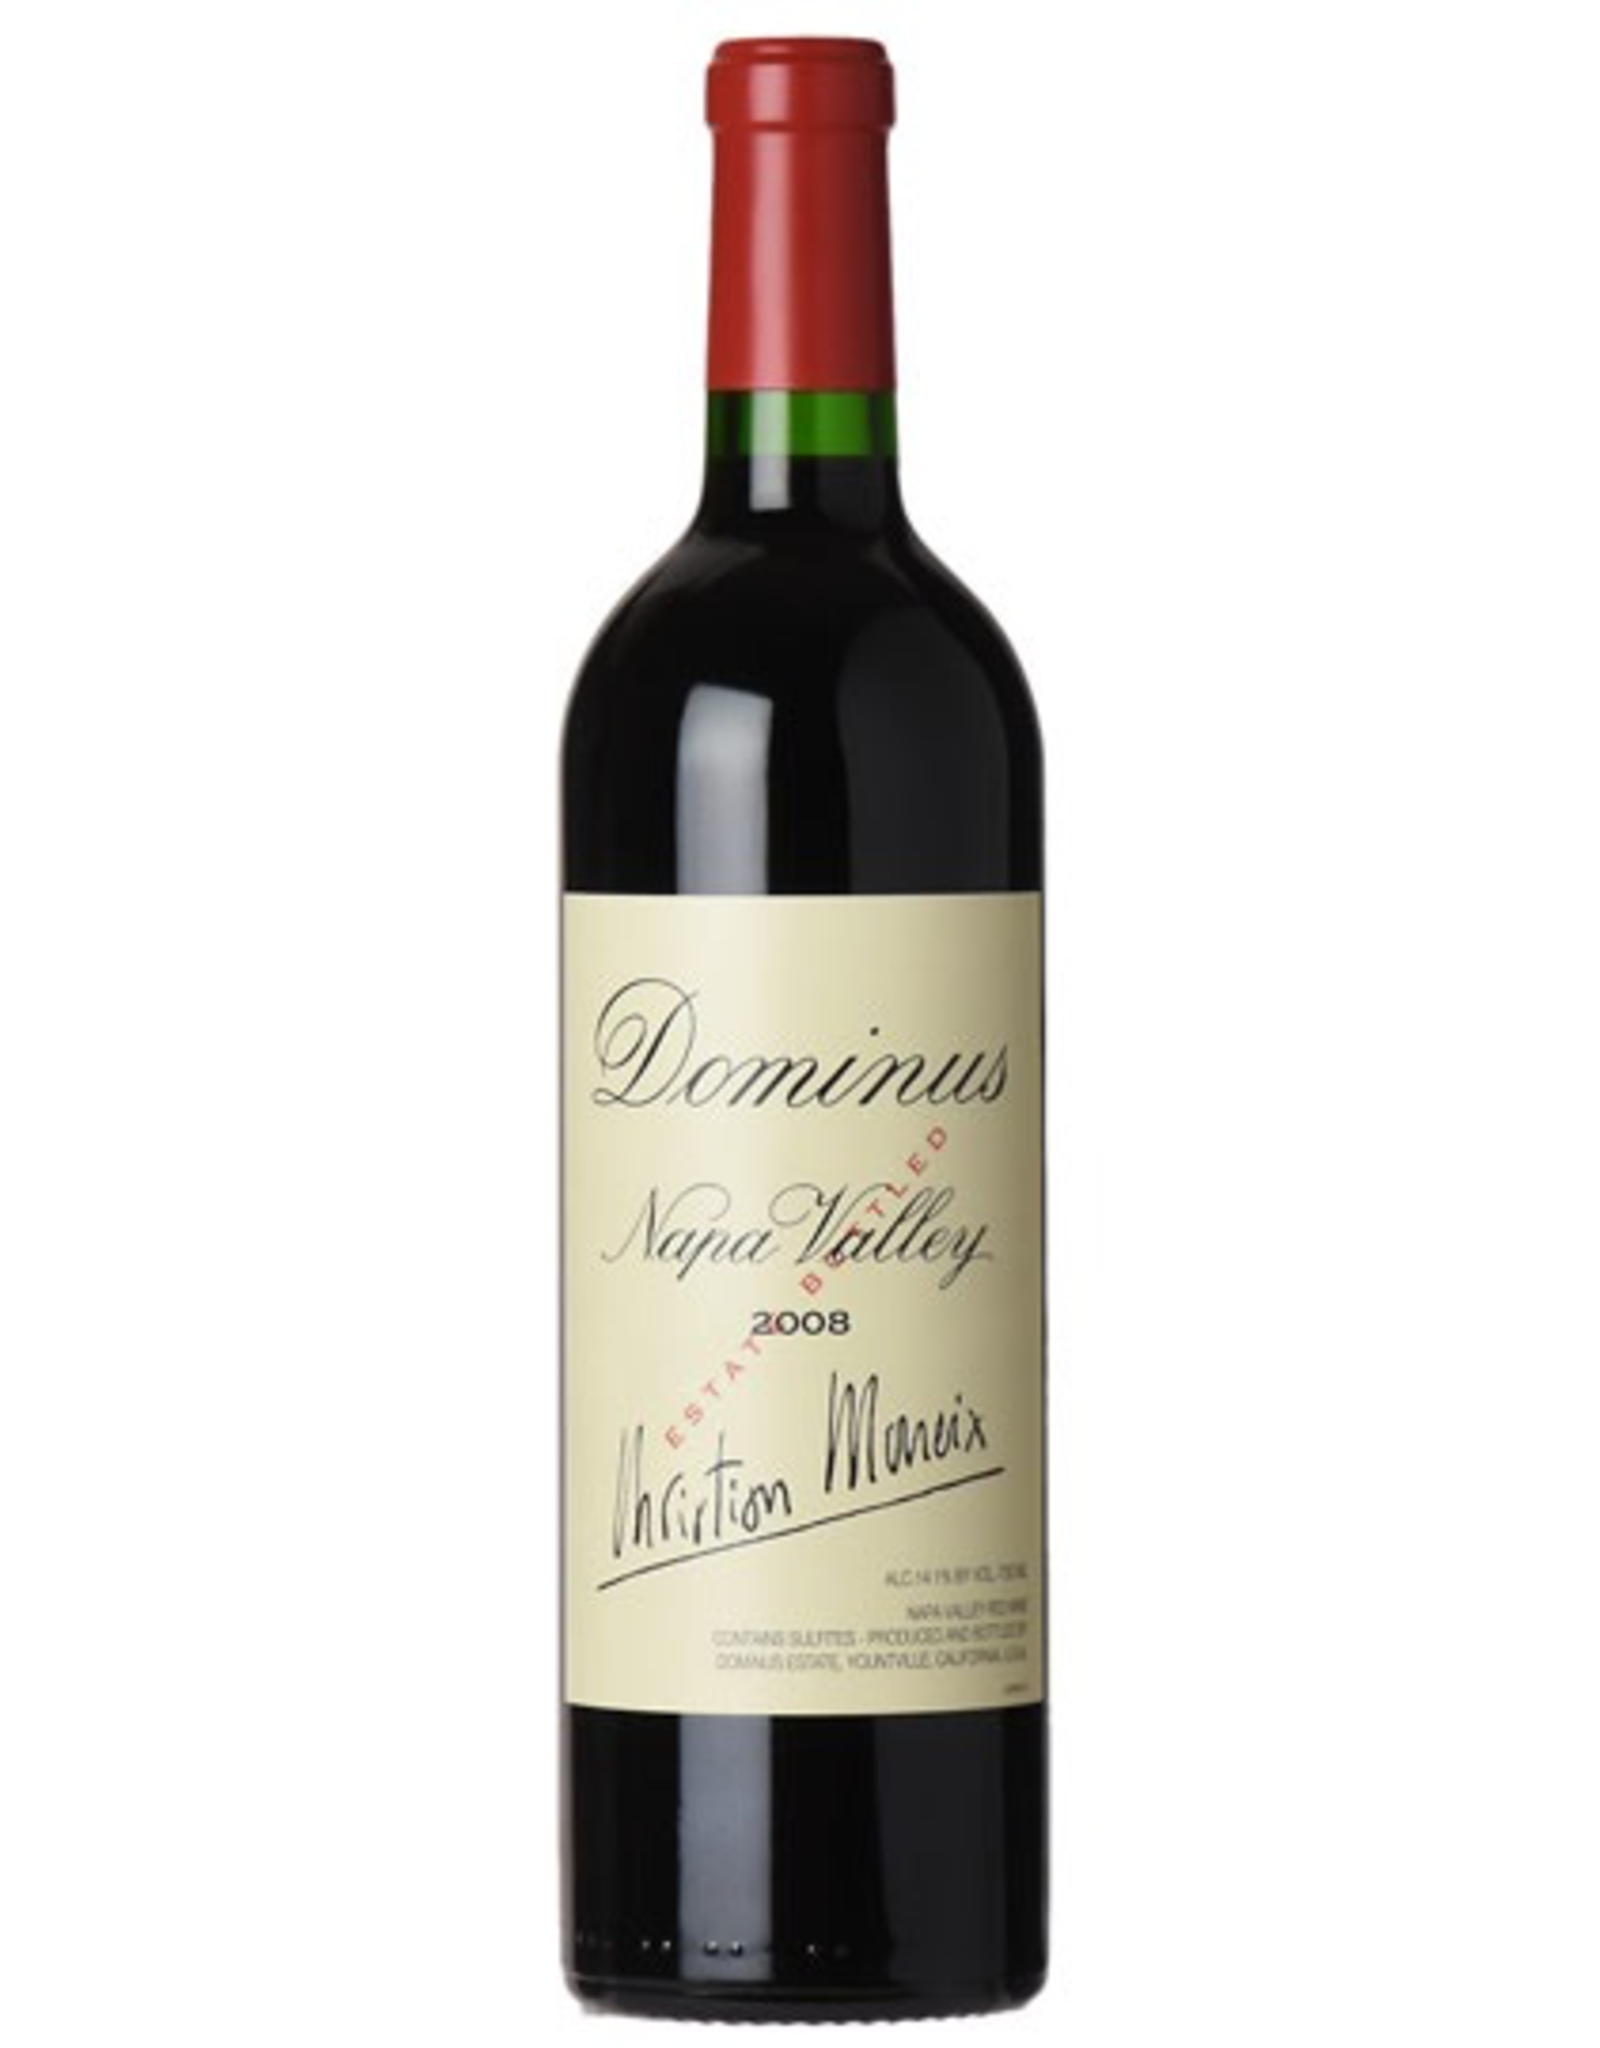 Red Wine 2008, Dominus Estate Christian Moueix, Red Bordeaux Blend, Yountville, Napa Valley, California, 14.1% Alc, CT94, RP 99